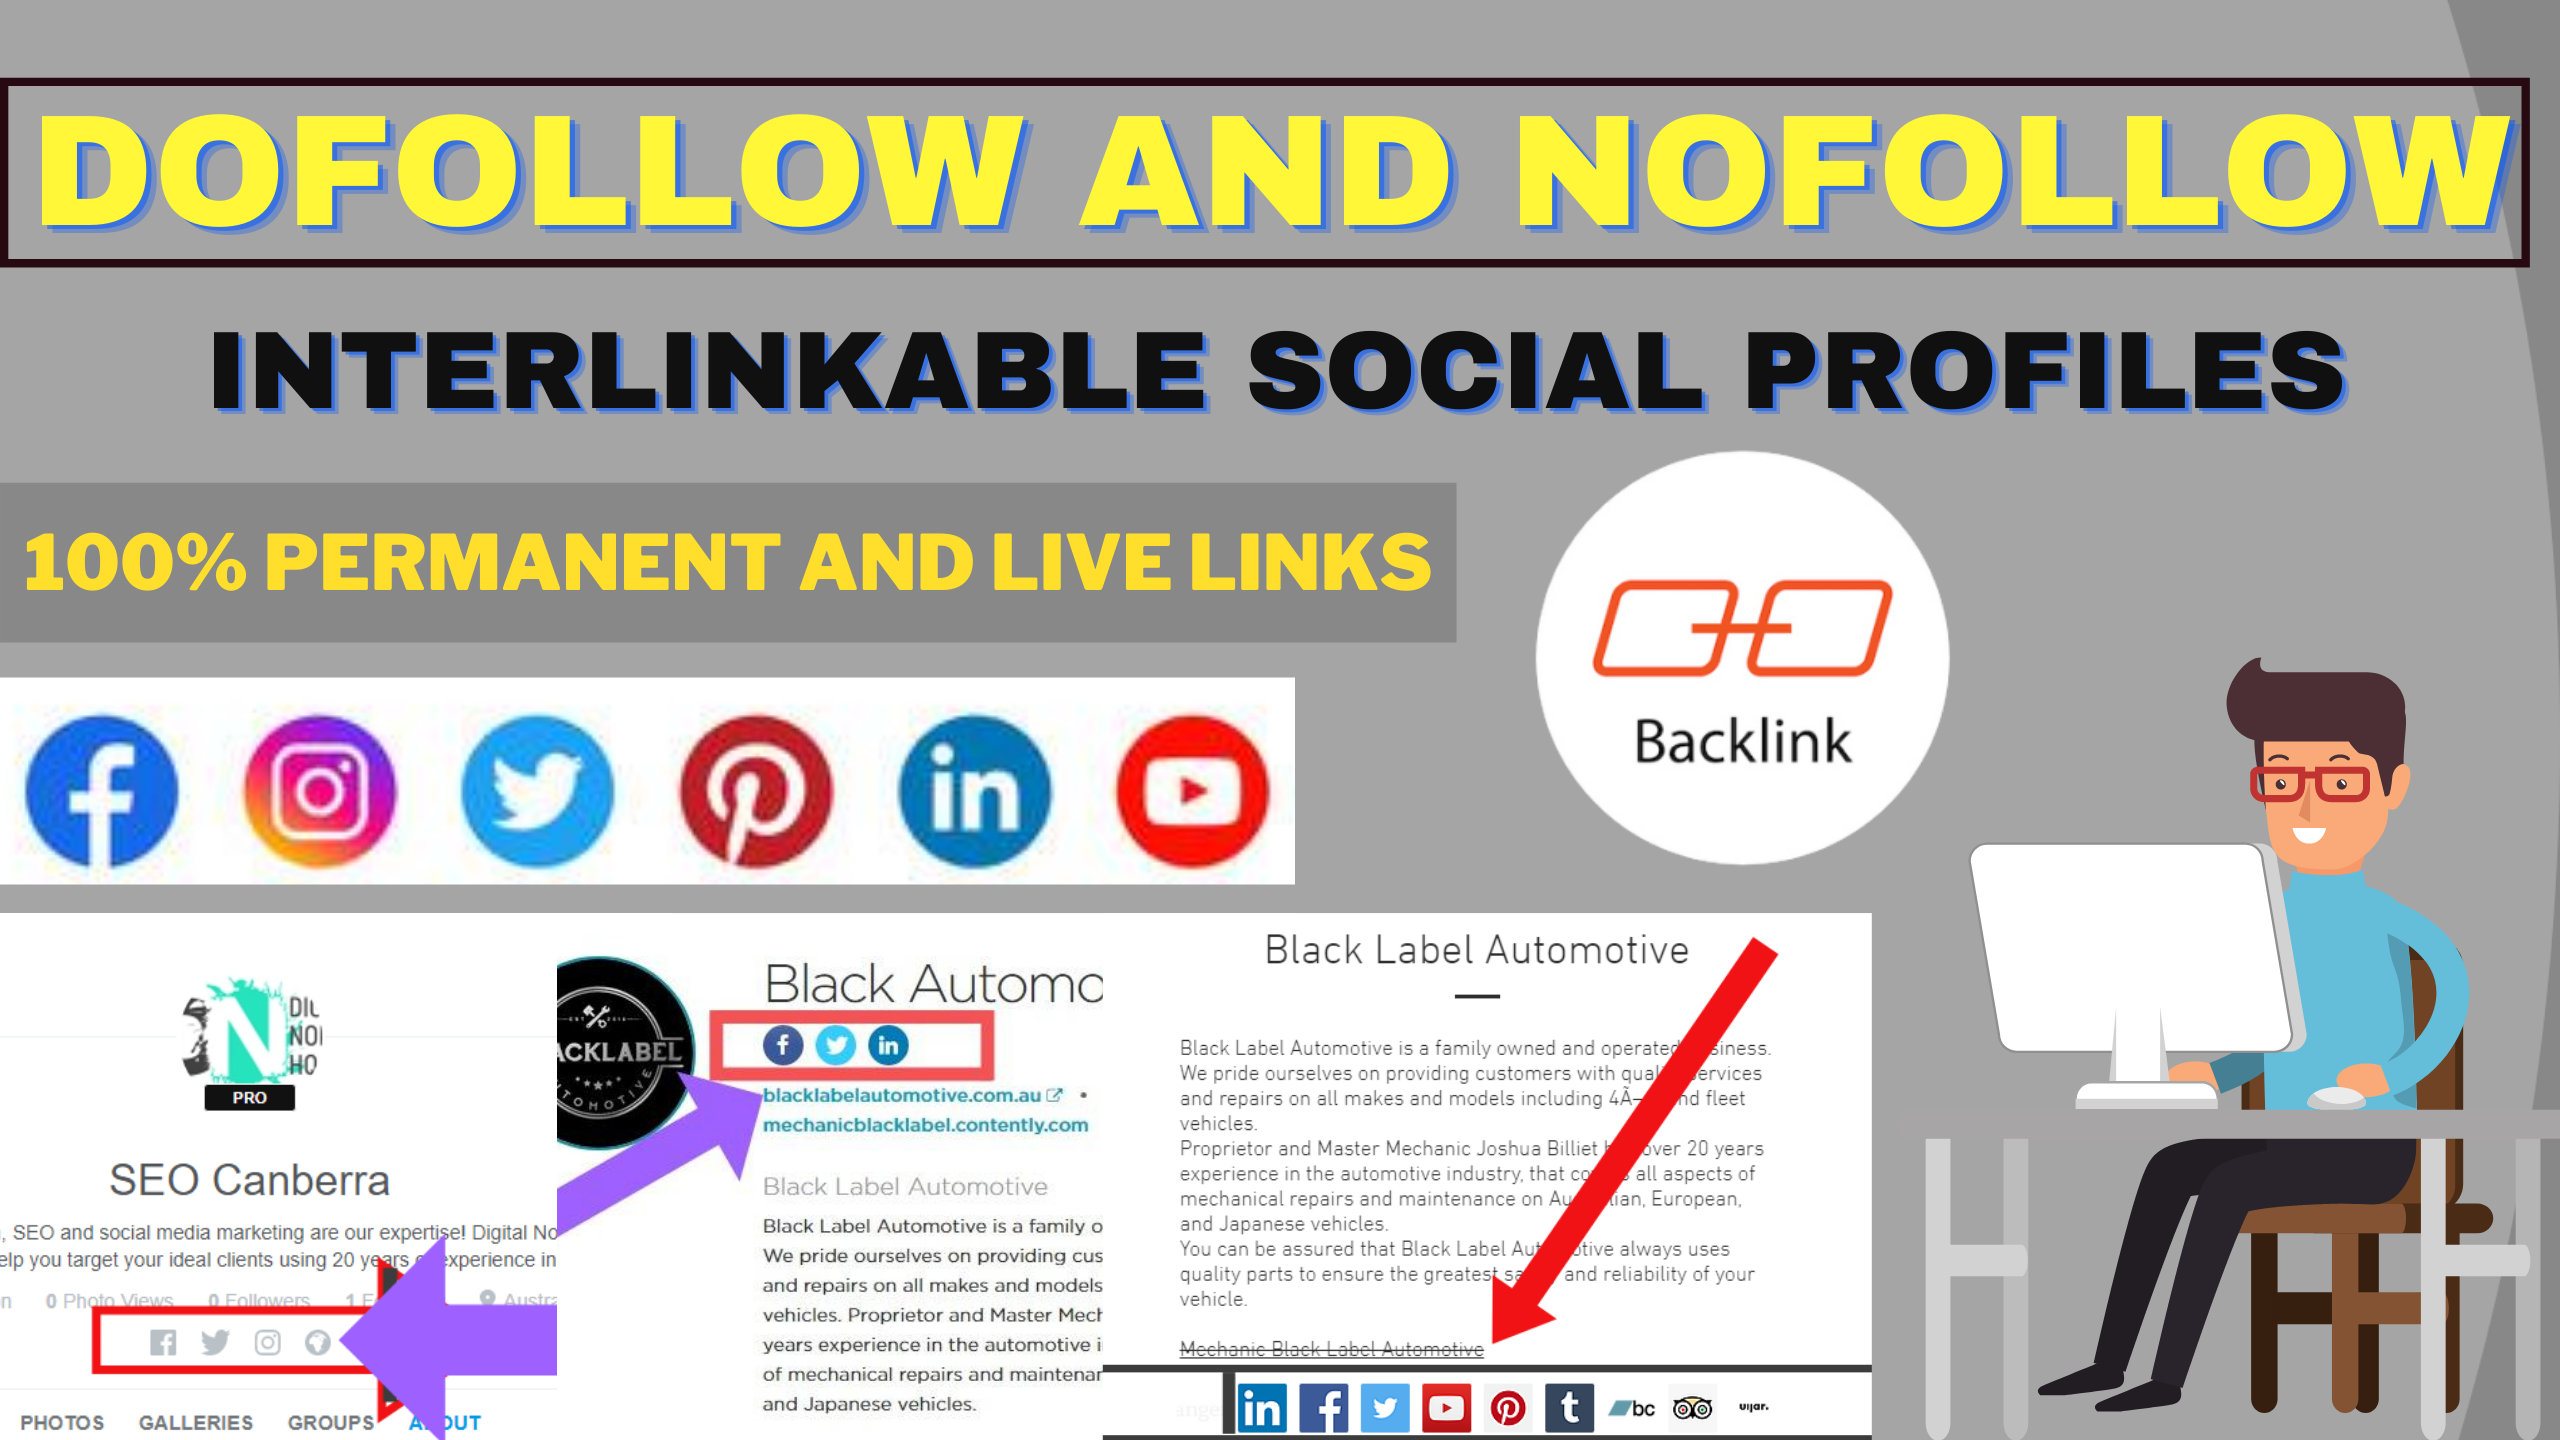 I will create 25 dofollow interlinkable social profiles